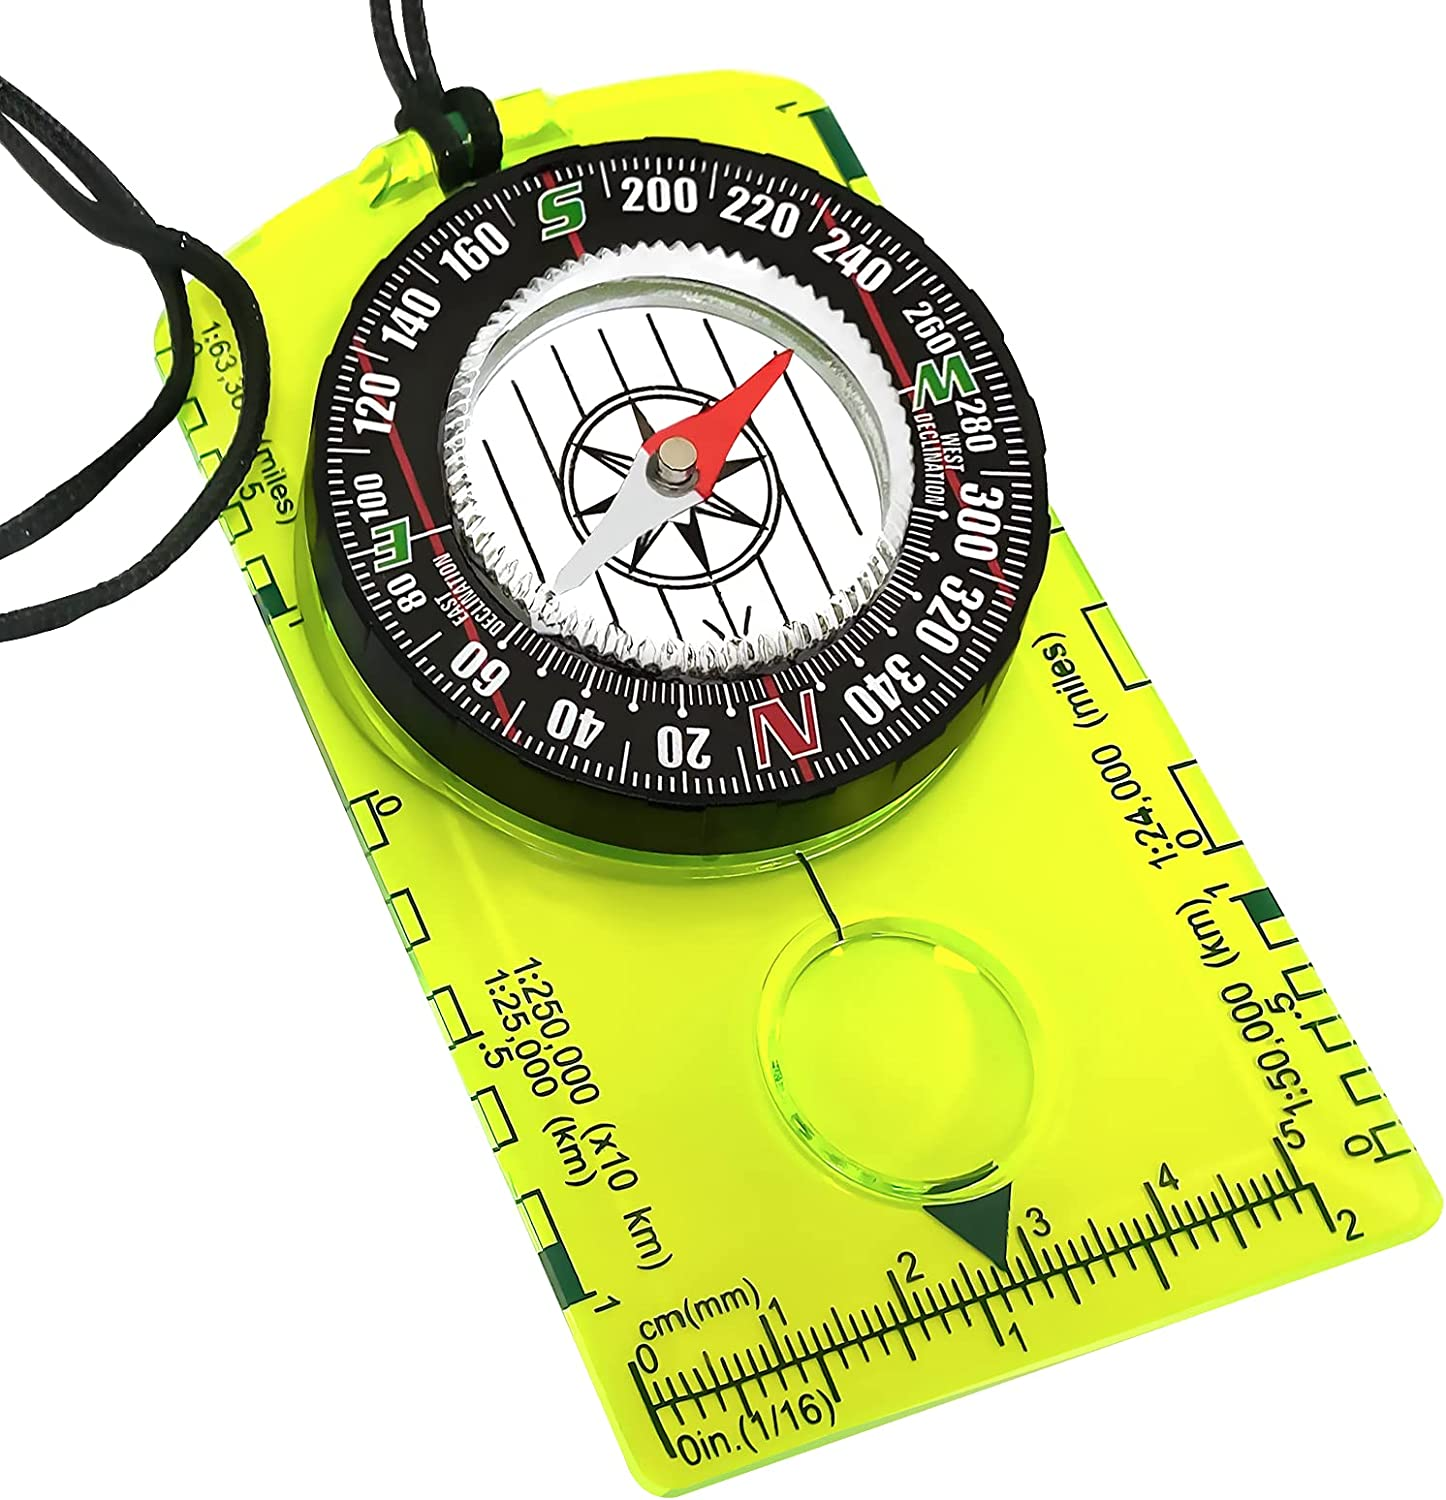 Orienteering Compass - Hiking Backpacking Compass - Advanced Scout Compass Camping and Navigation - Boy Scout Compass for kids - Professional Field Compass for Map Reading - Best Survival Gifts : Sports & Outdoors